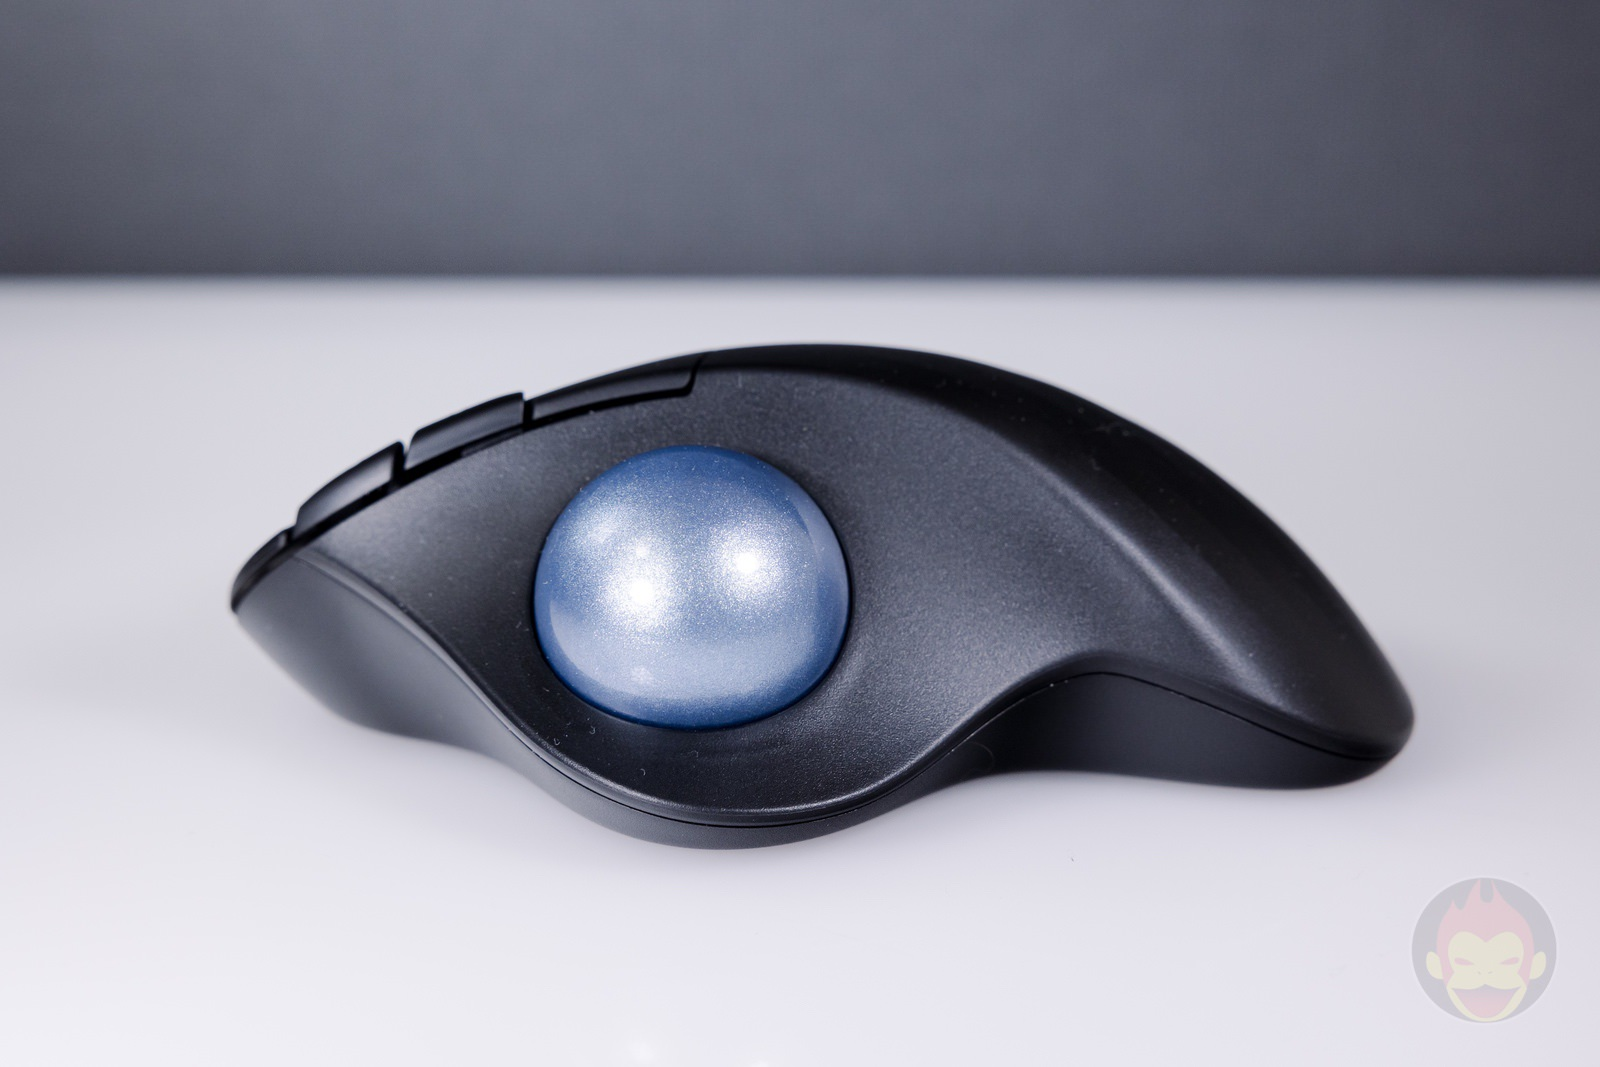 Logicool-ERGO-M575S-Trackball-Hands-on-01.jpg